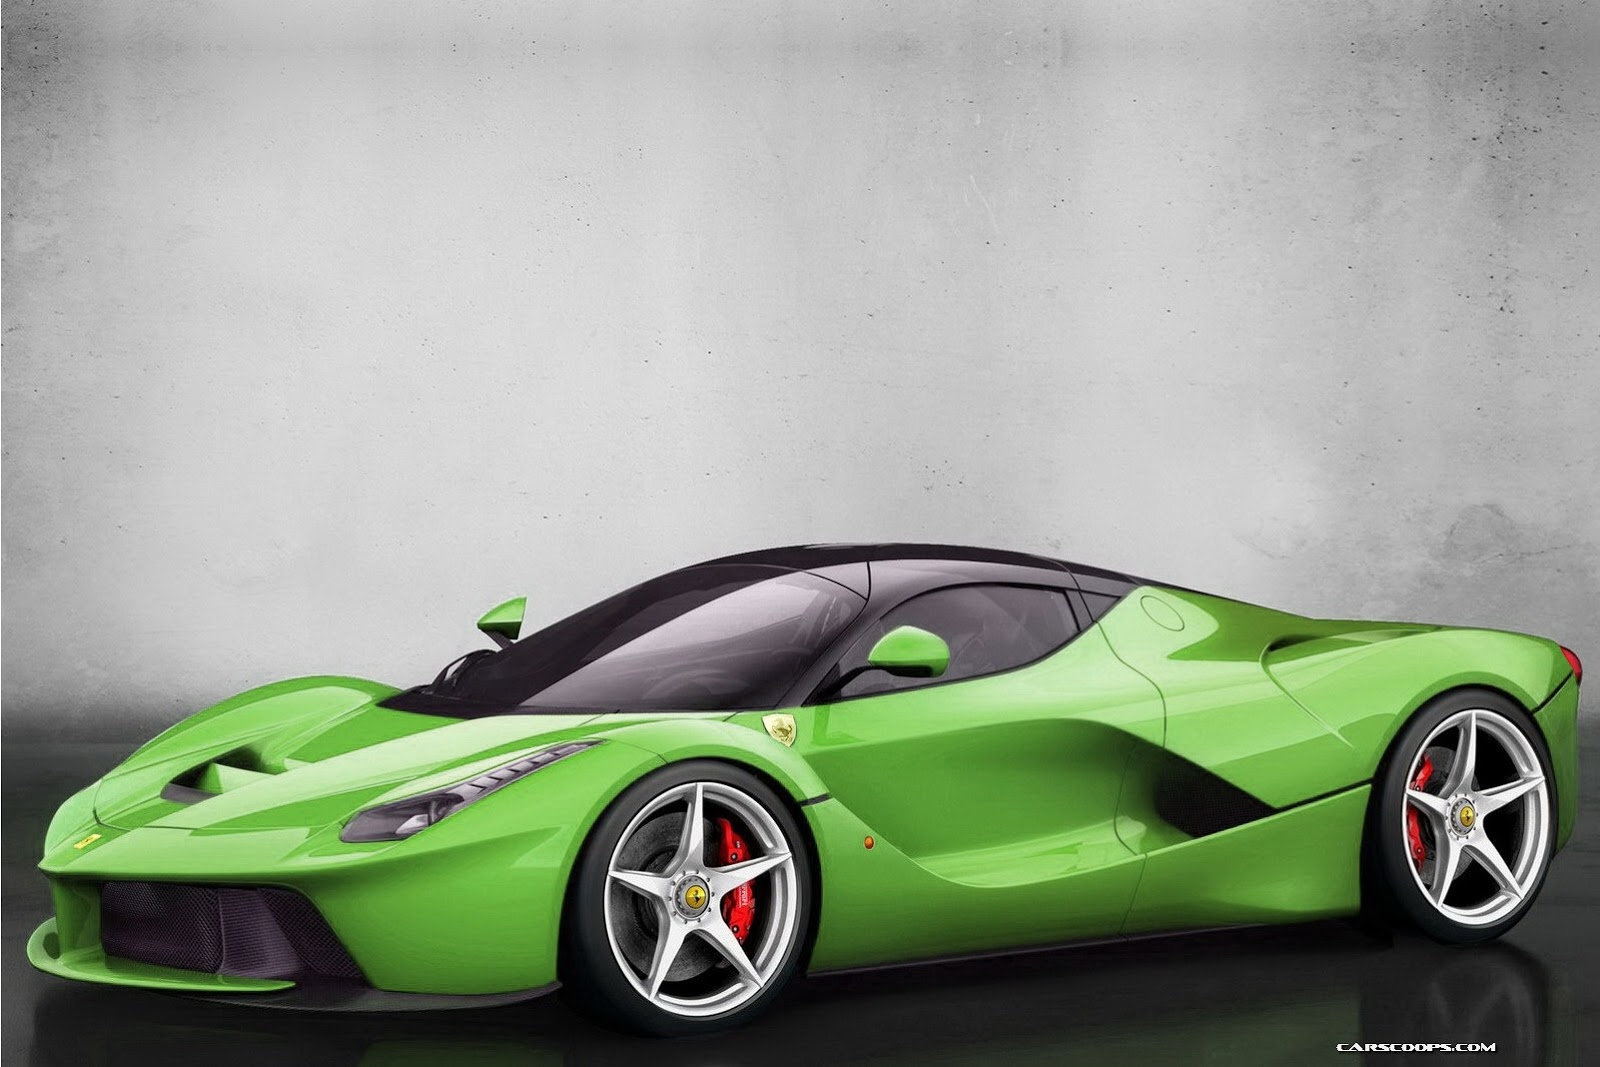 La Other Colours For Laferrari